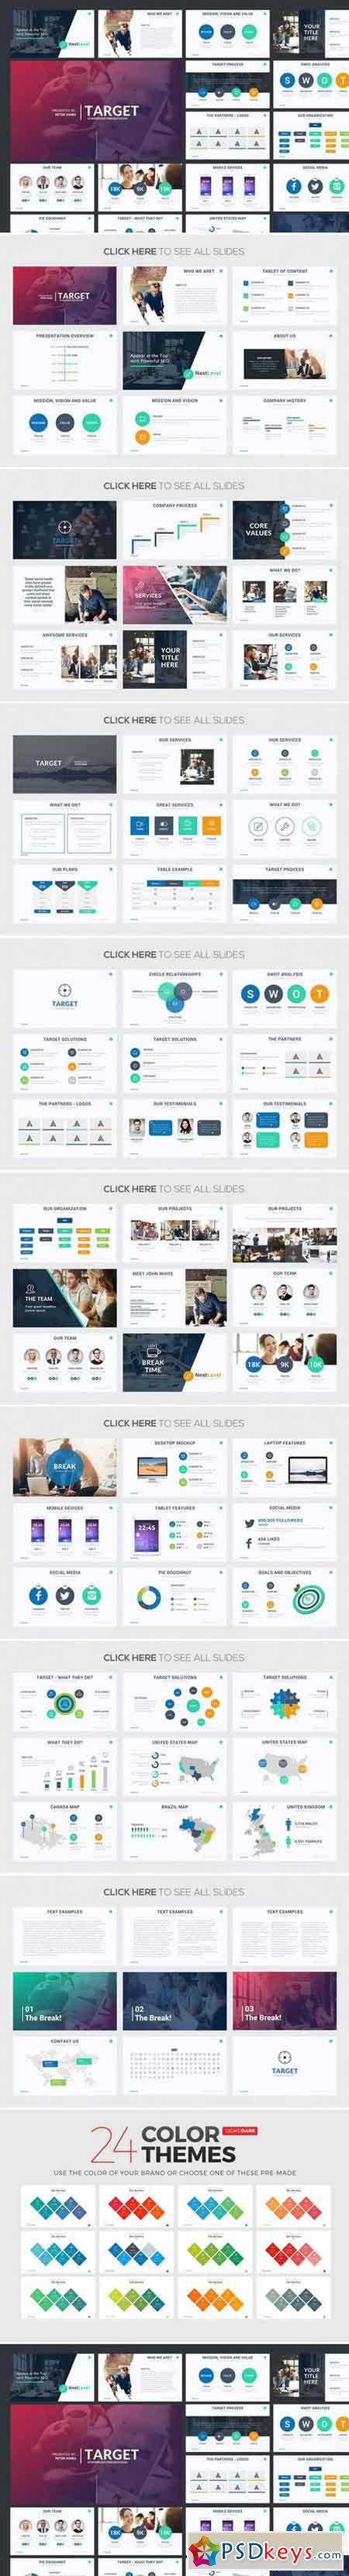 Target powerpoint template 787254 free download photoshop vector target powerpoint template 787254 toneelgroepblik Gallery